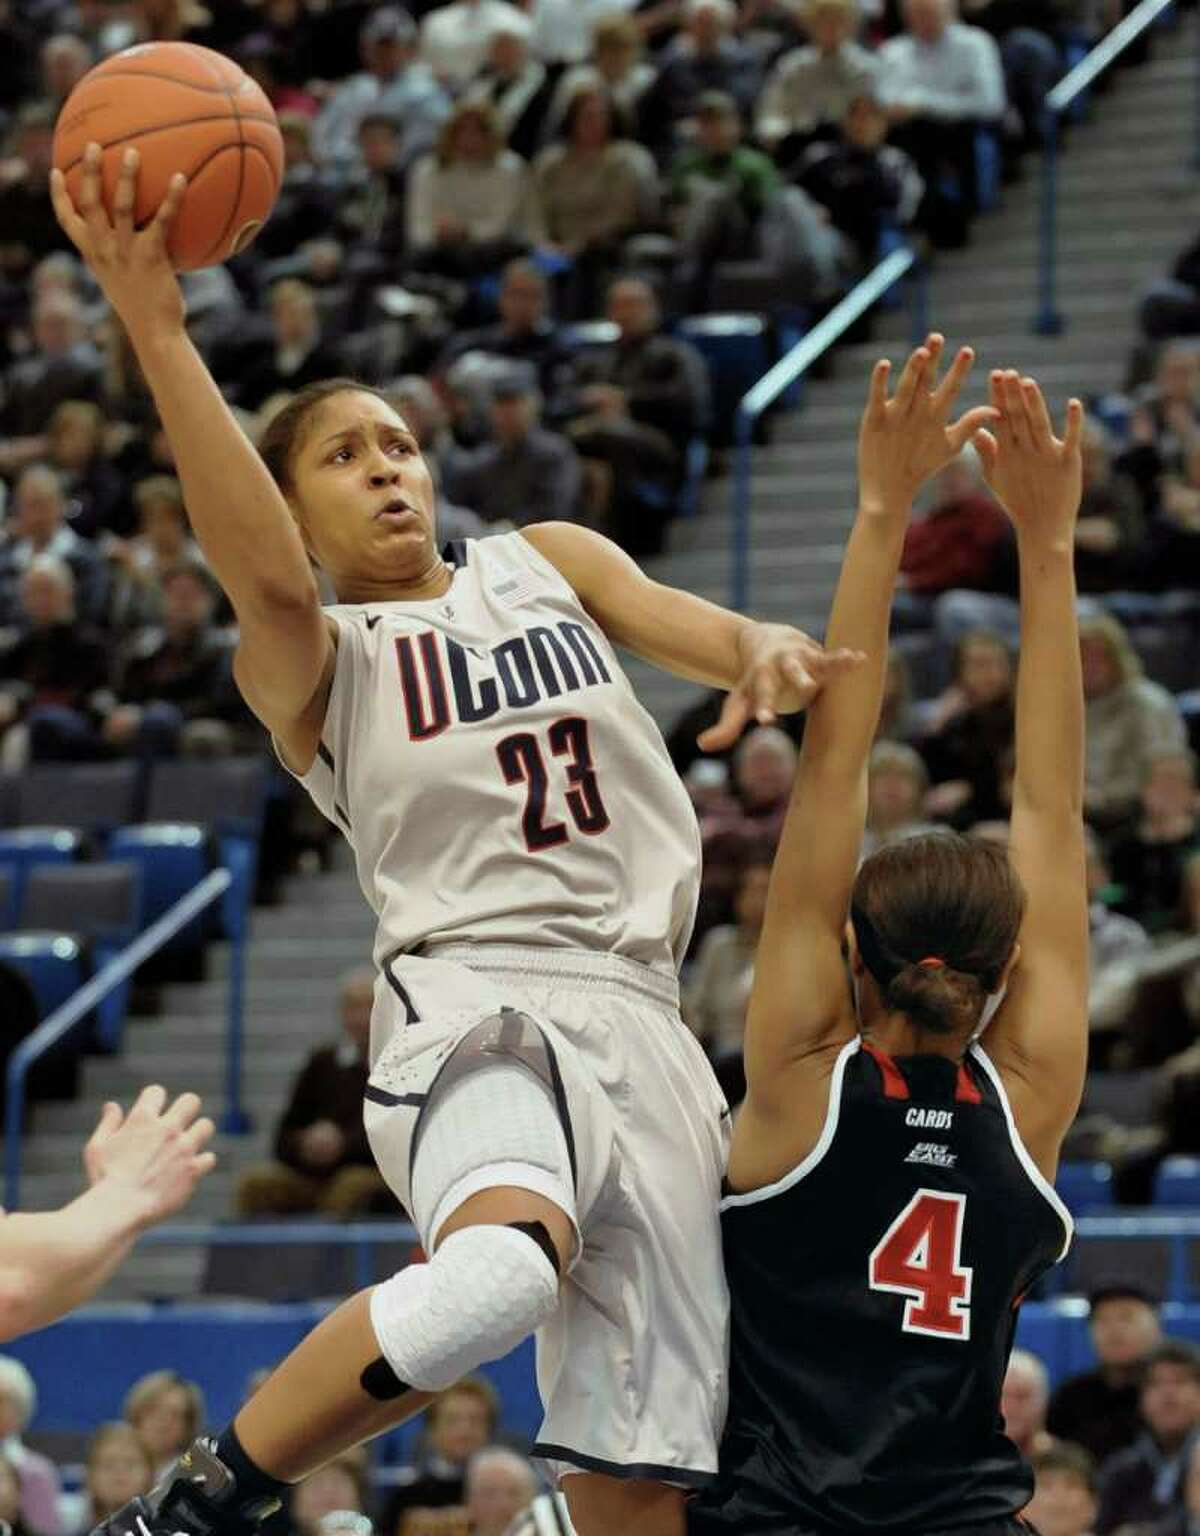 Connecticut's Maya Moore goes up for a basket while guarded by Louisville's Antonita Slaughter (4) during the first half of an NCAA college basketball game, in Hartford, Conn., Saturday, Jan. 15, 2011. (AP Photo/Jessica Hill)